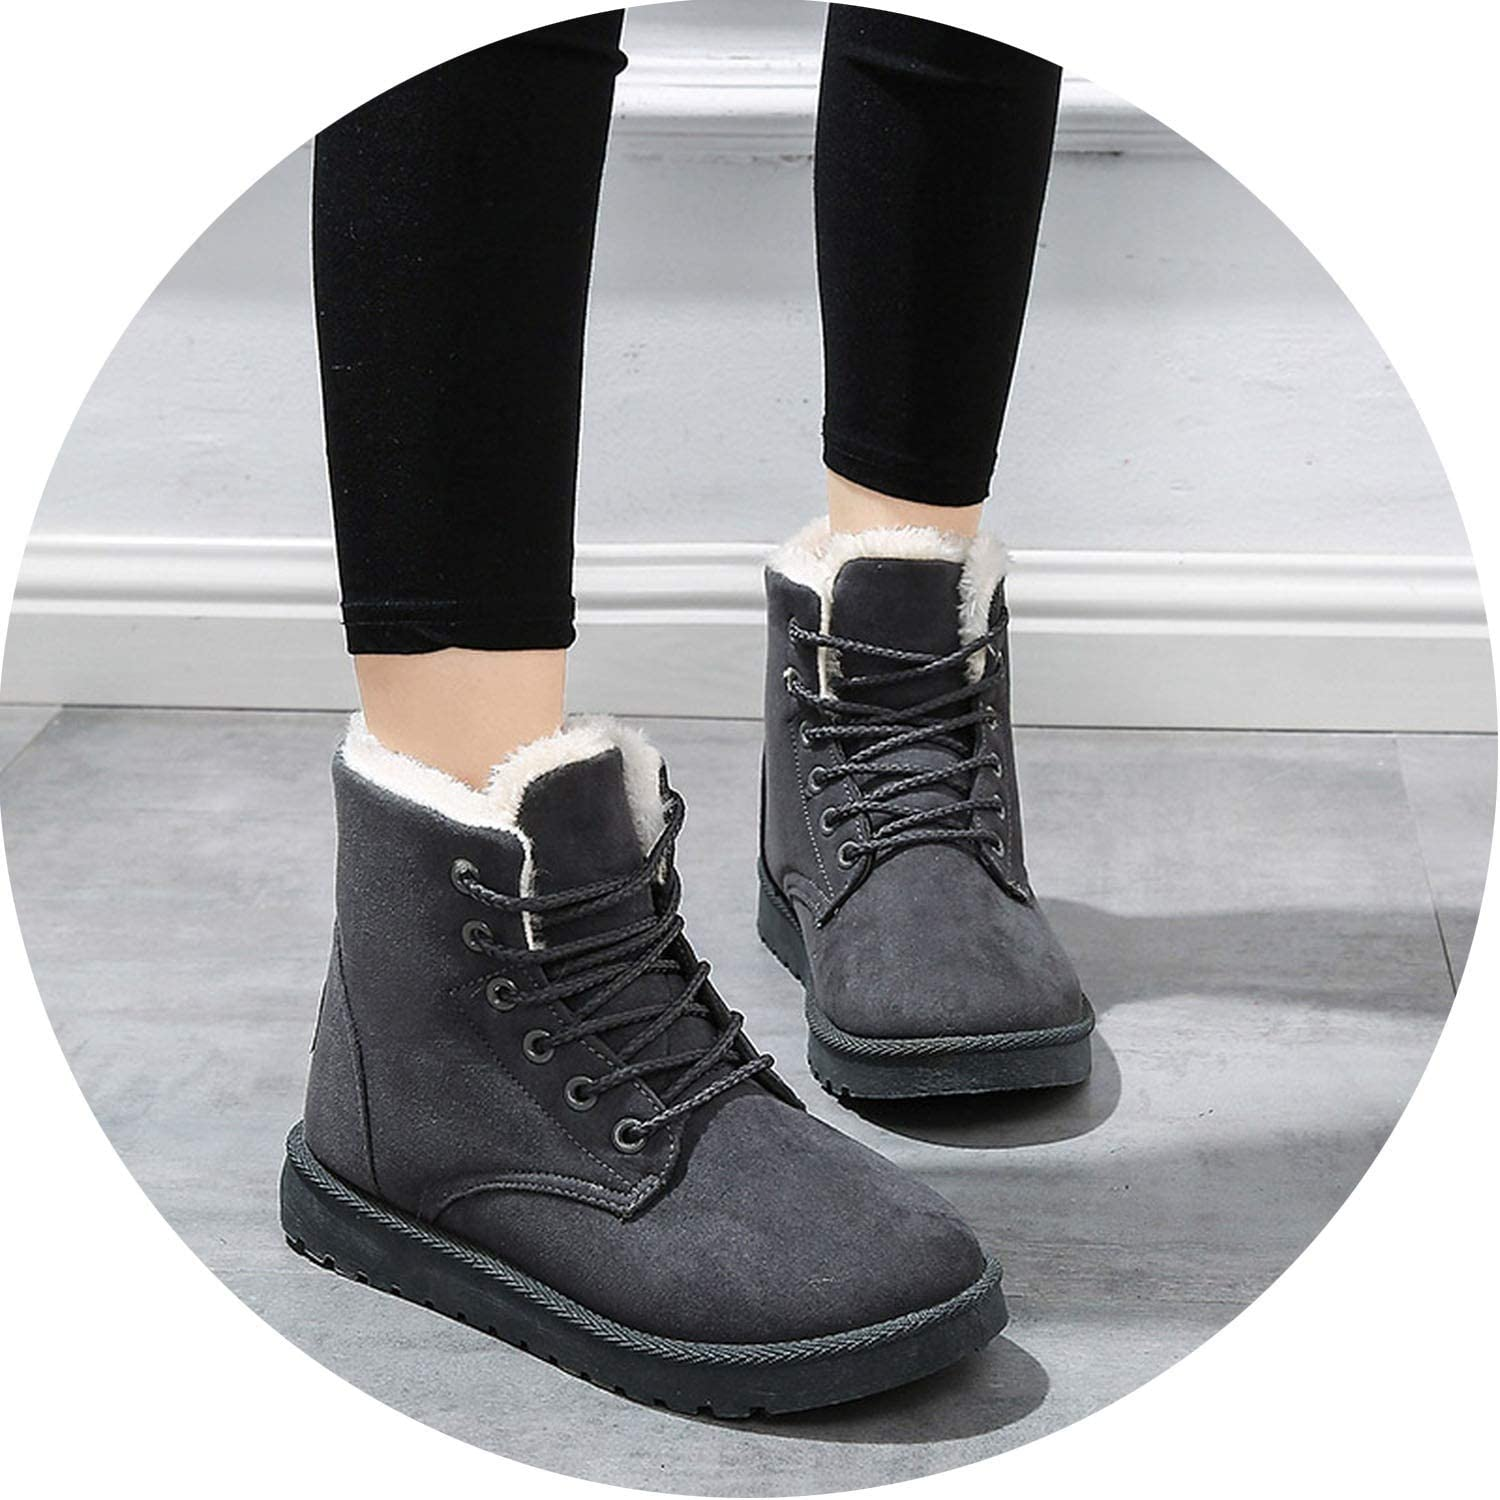 Crazy-Shop Women Boots Winter Warm Snow Boots Suede Ankle Boots for Female Plush Booties Woman Plus Size